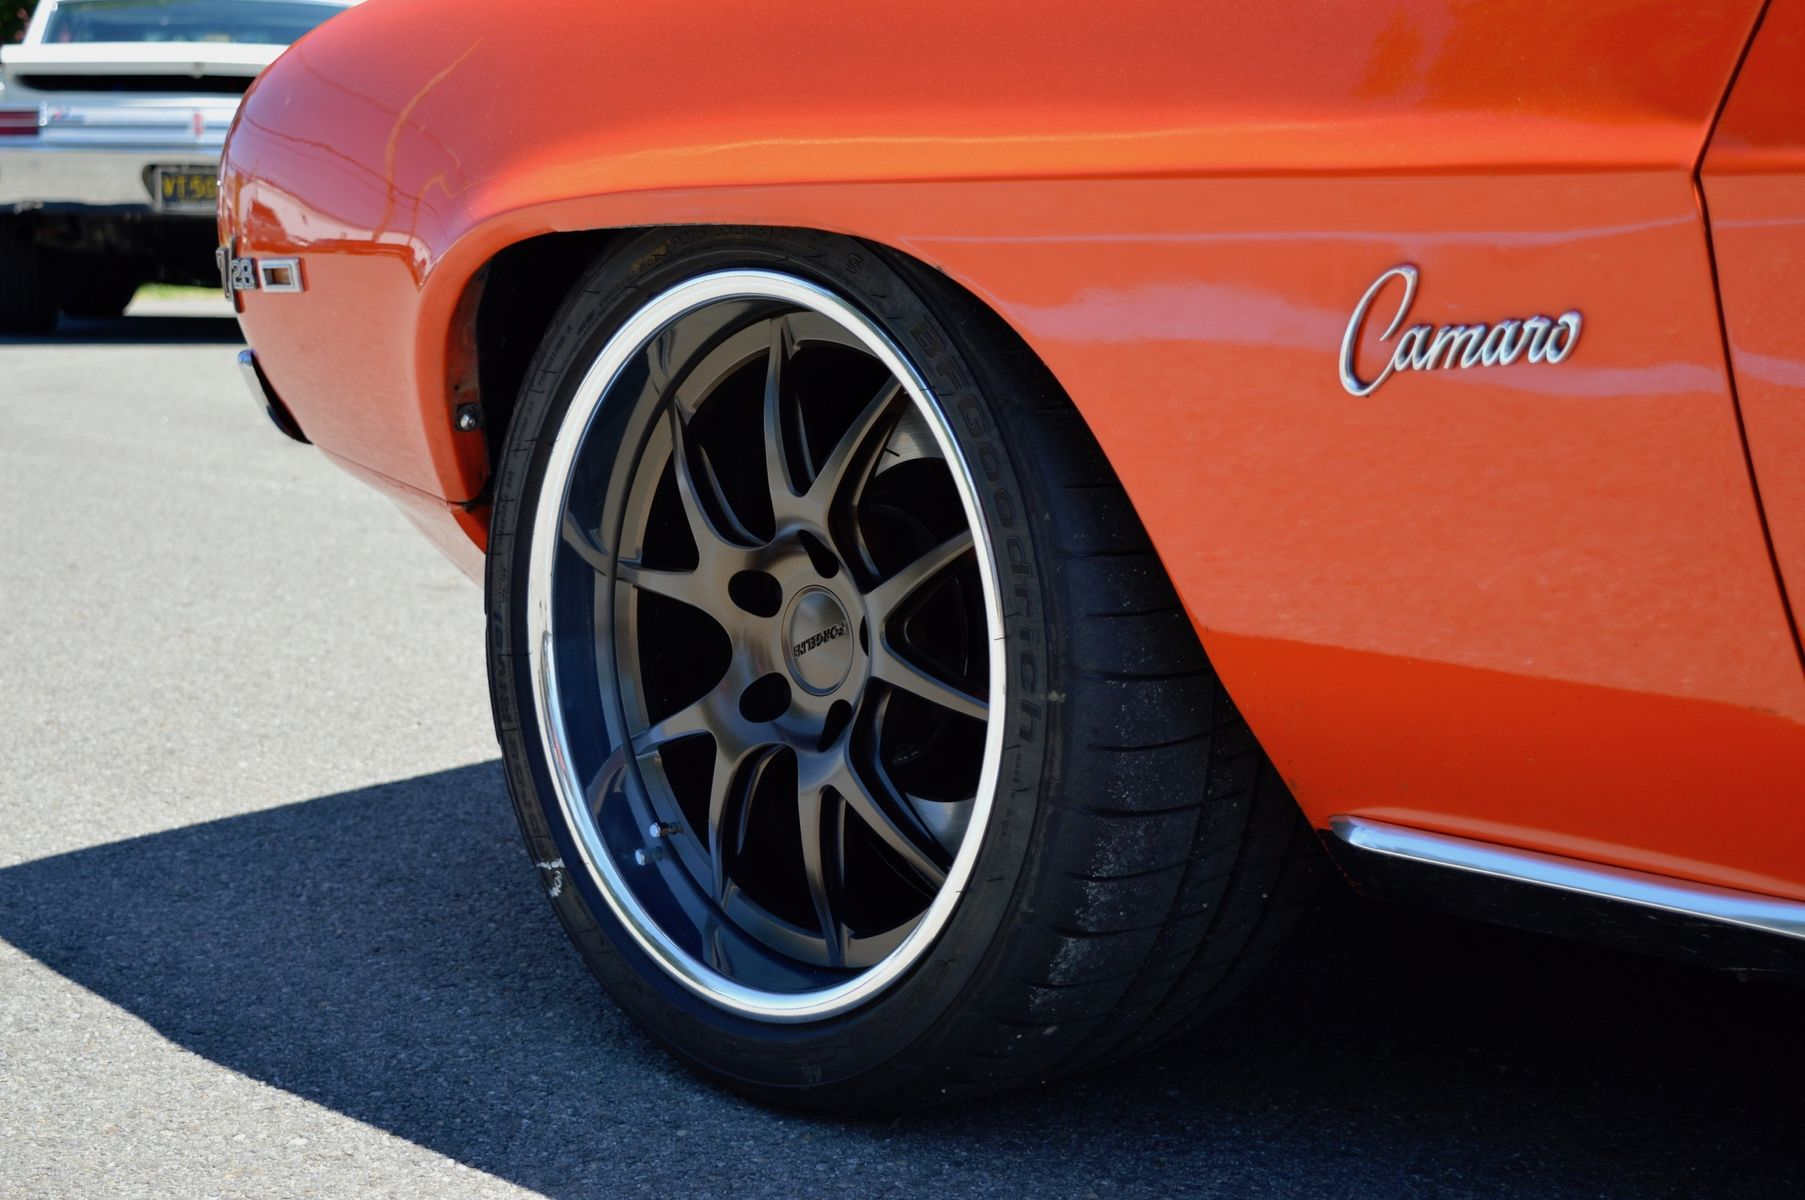 1969 Chevrolet Camaro | Brian Coney's Pro-Touring '69 Camaro on Forgeline GA3 Wheels